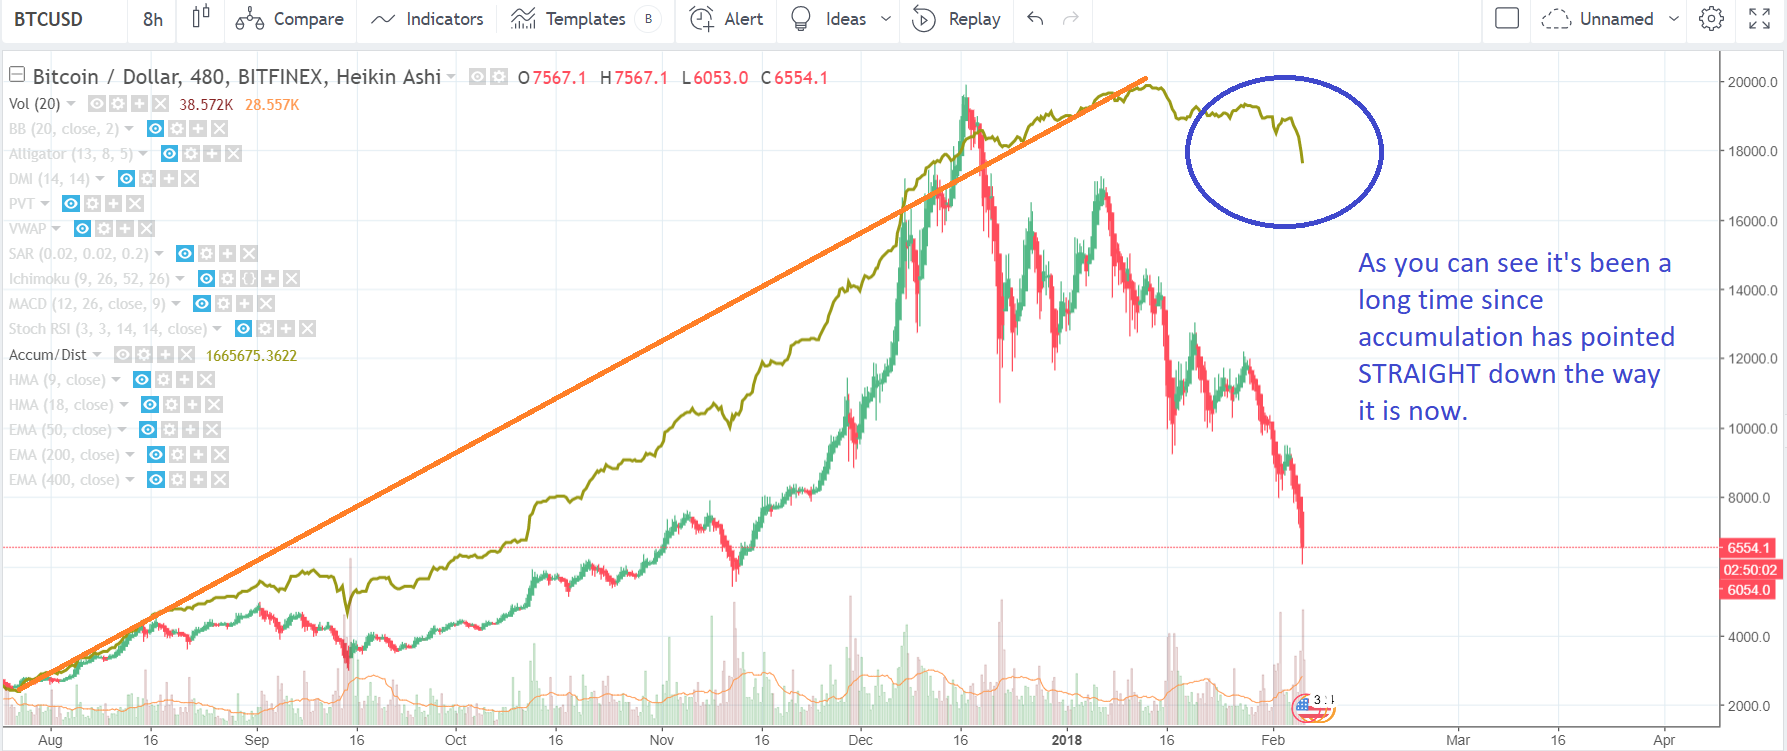 What's going on with BTC-USD?: Bitcoin Price Analysis